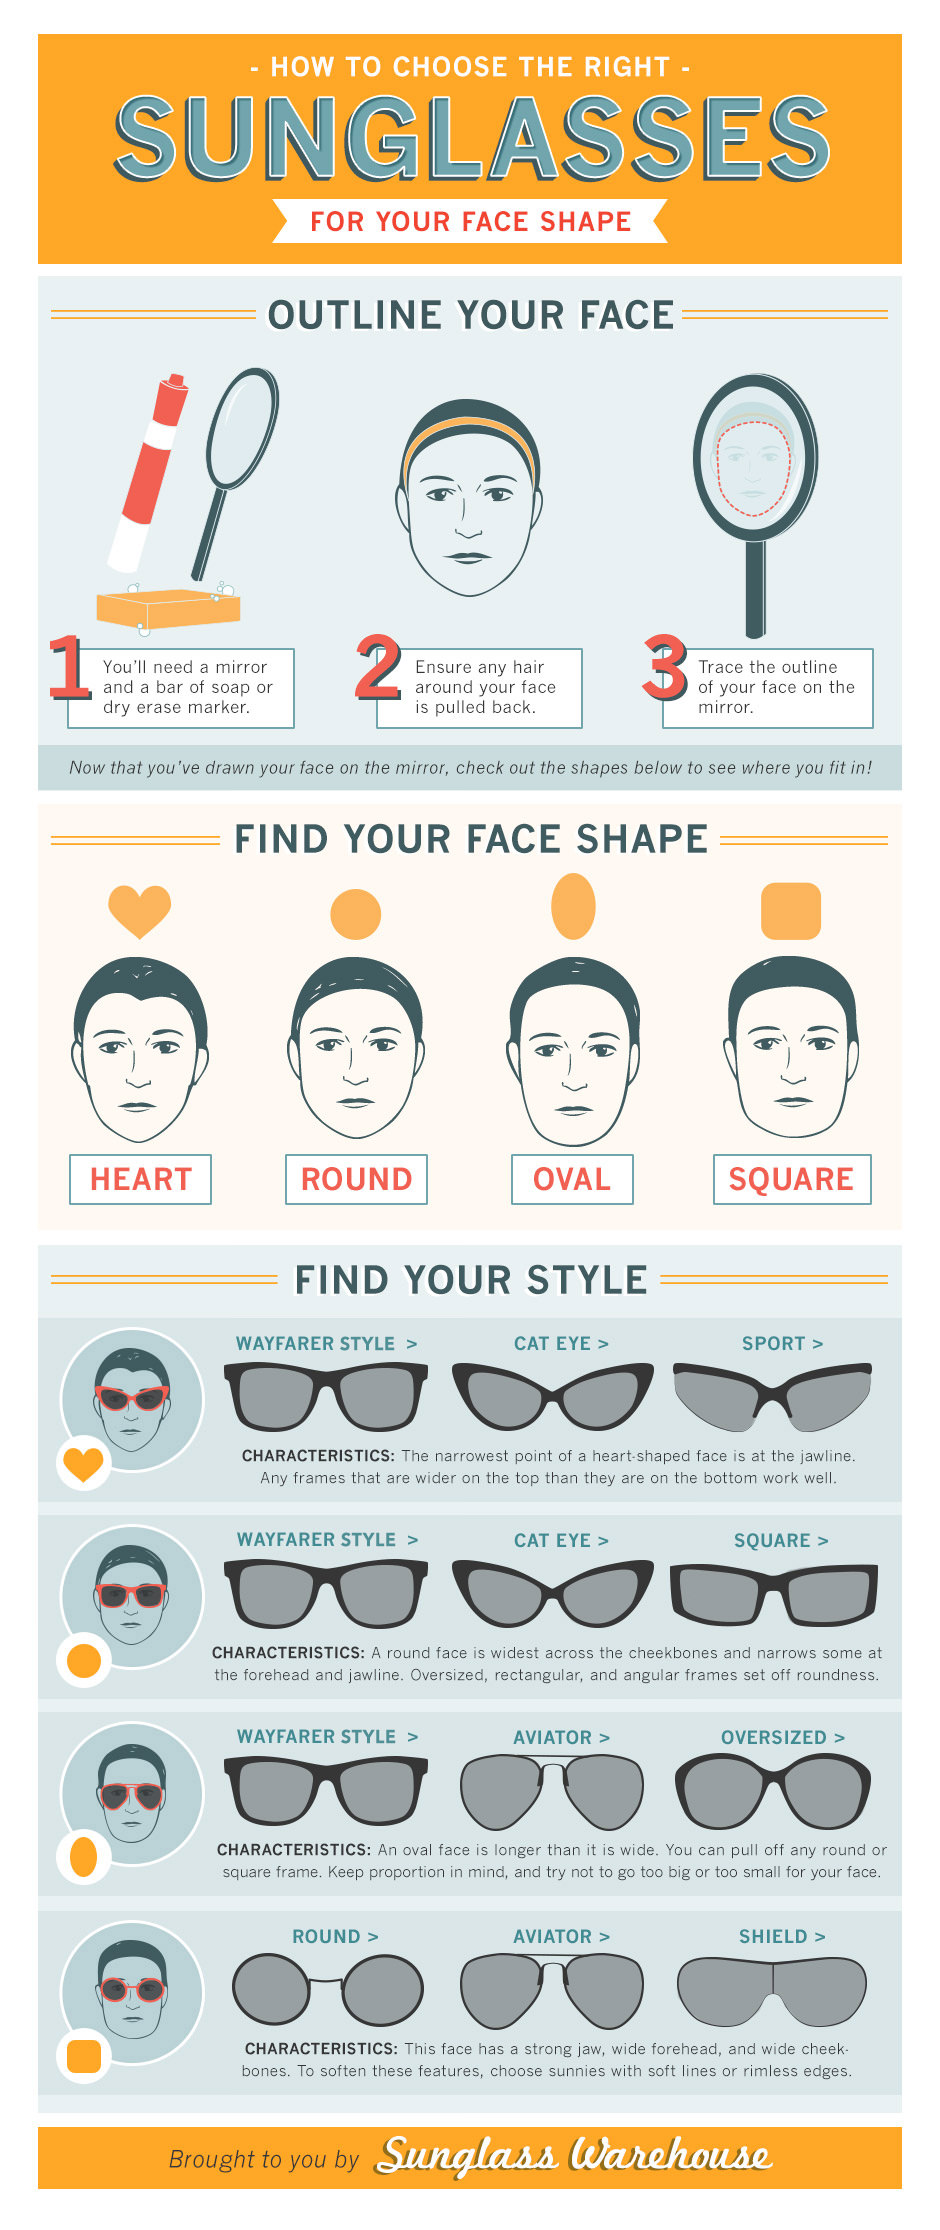 sunglasses, find the right sunglasses according to face shape